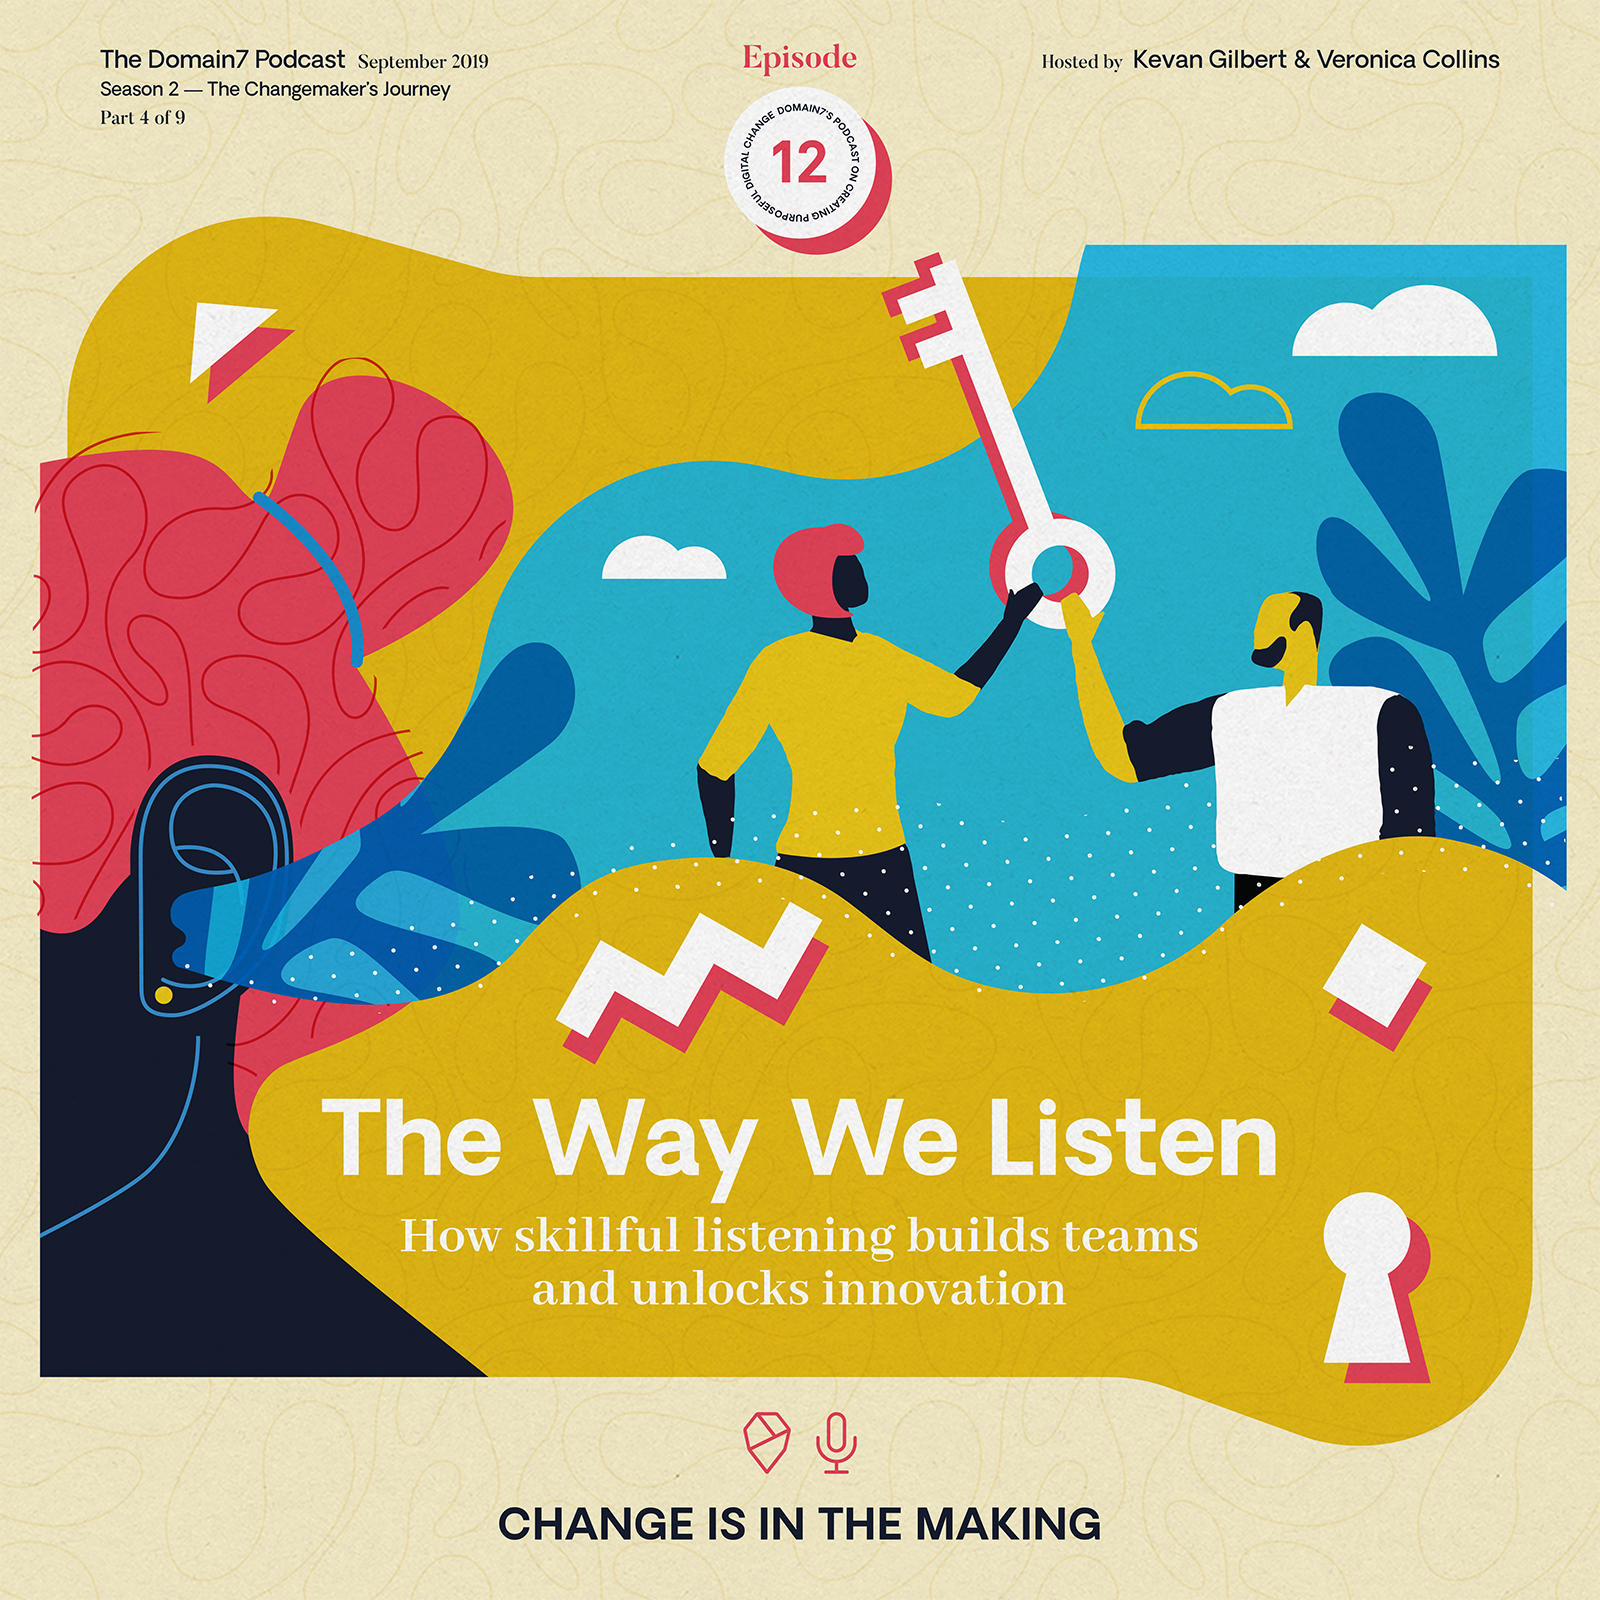 Episode 13: The Way We Listen, with Ceri Rees